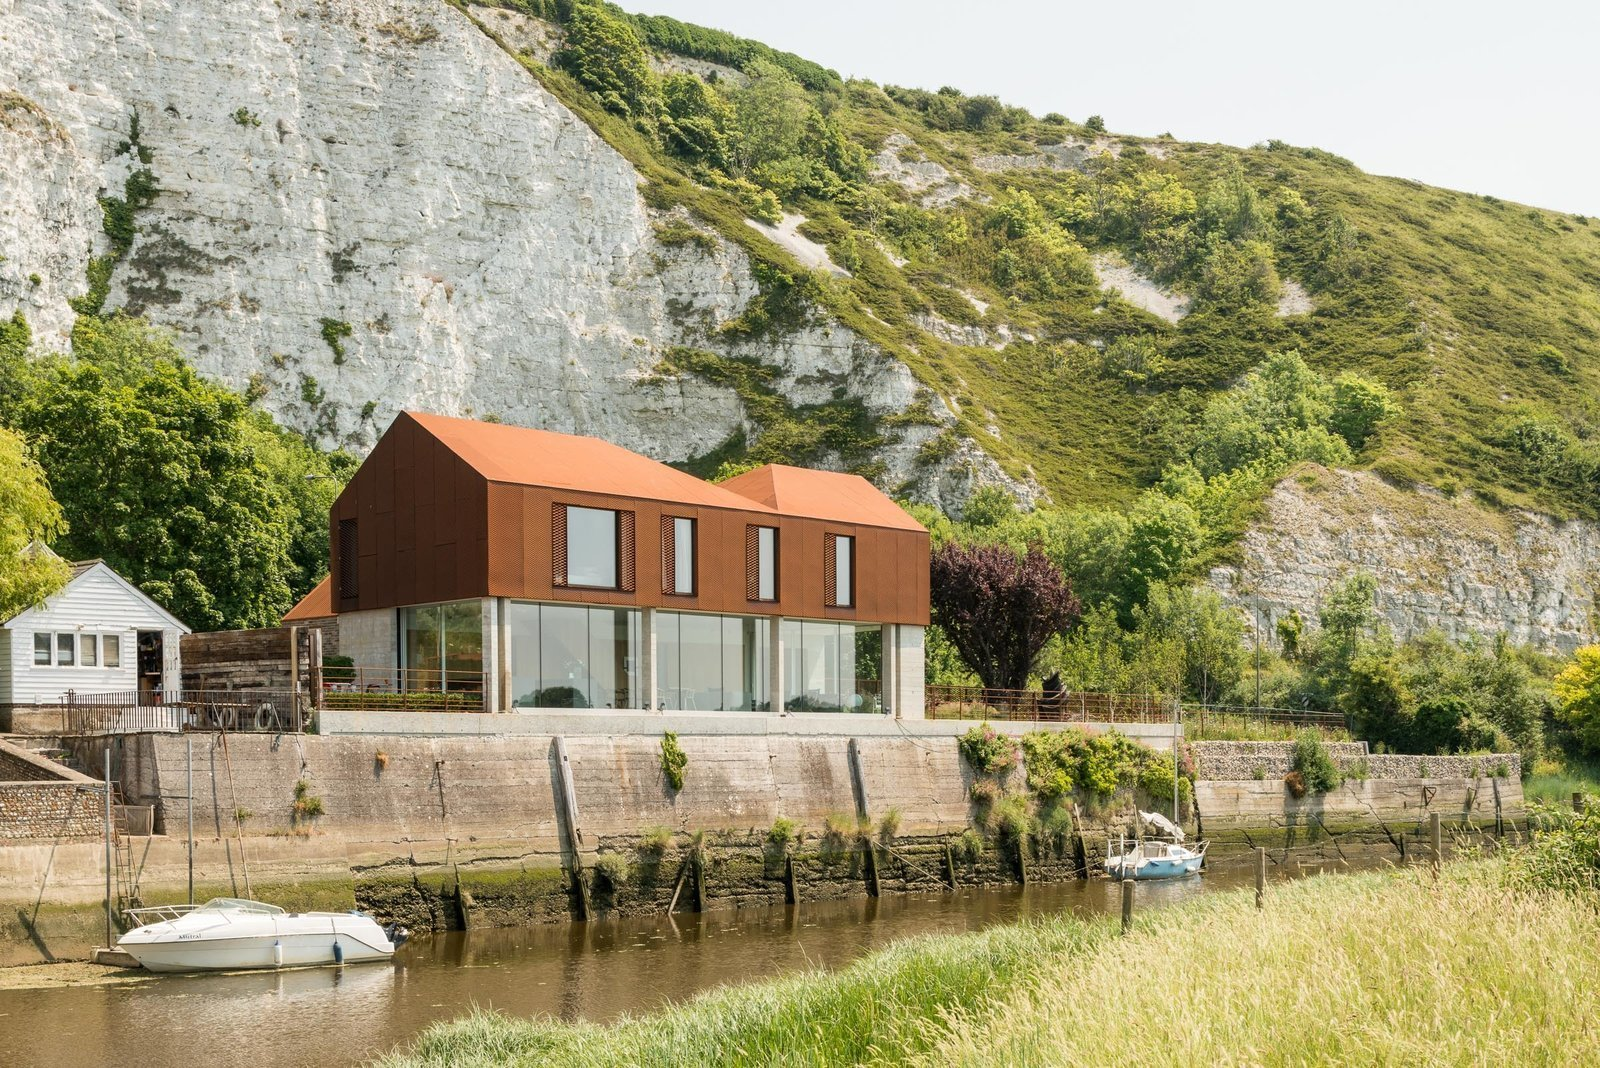 Side Yard, Trees, Grass, Exterior, House Building Type, Metal Roof Material, and Metal Siding Material Perched along the banks of the River Ouse near the historic English town of Lewes is a Cor-Ten steel house with a  Photo 5 of 10 in Dwell's Top 10 Prefabs of 2017 from Explore a Prefabricated House For Sale in England That's Clad With Cor-Ten Steel